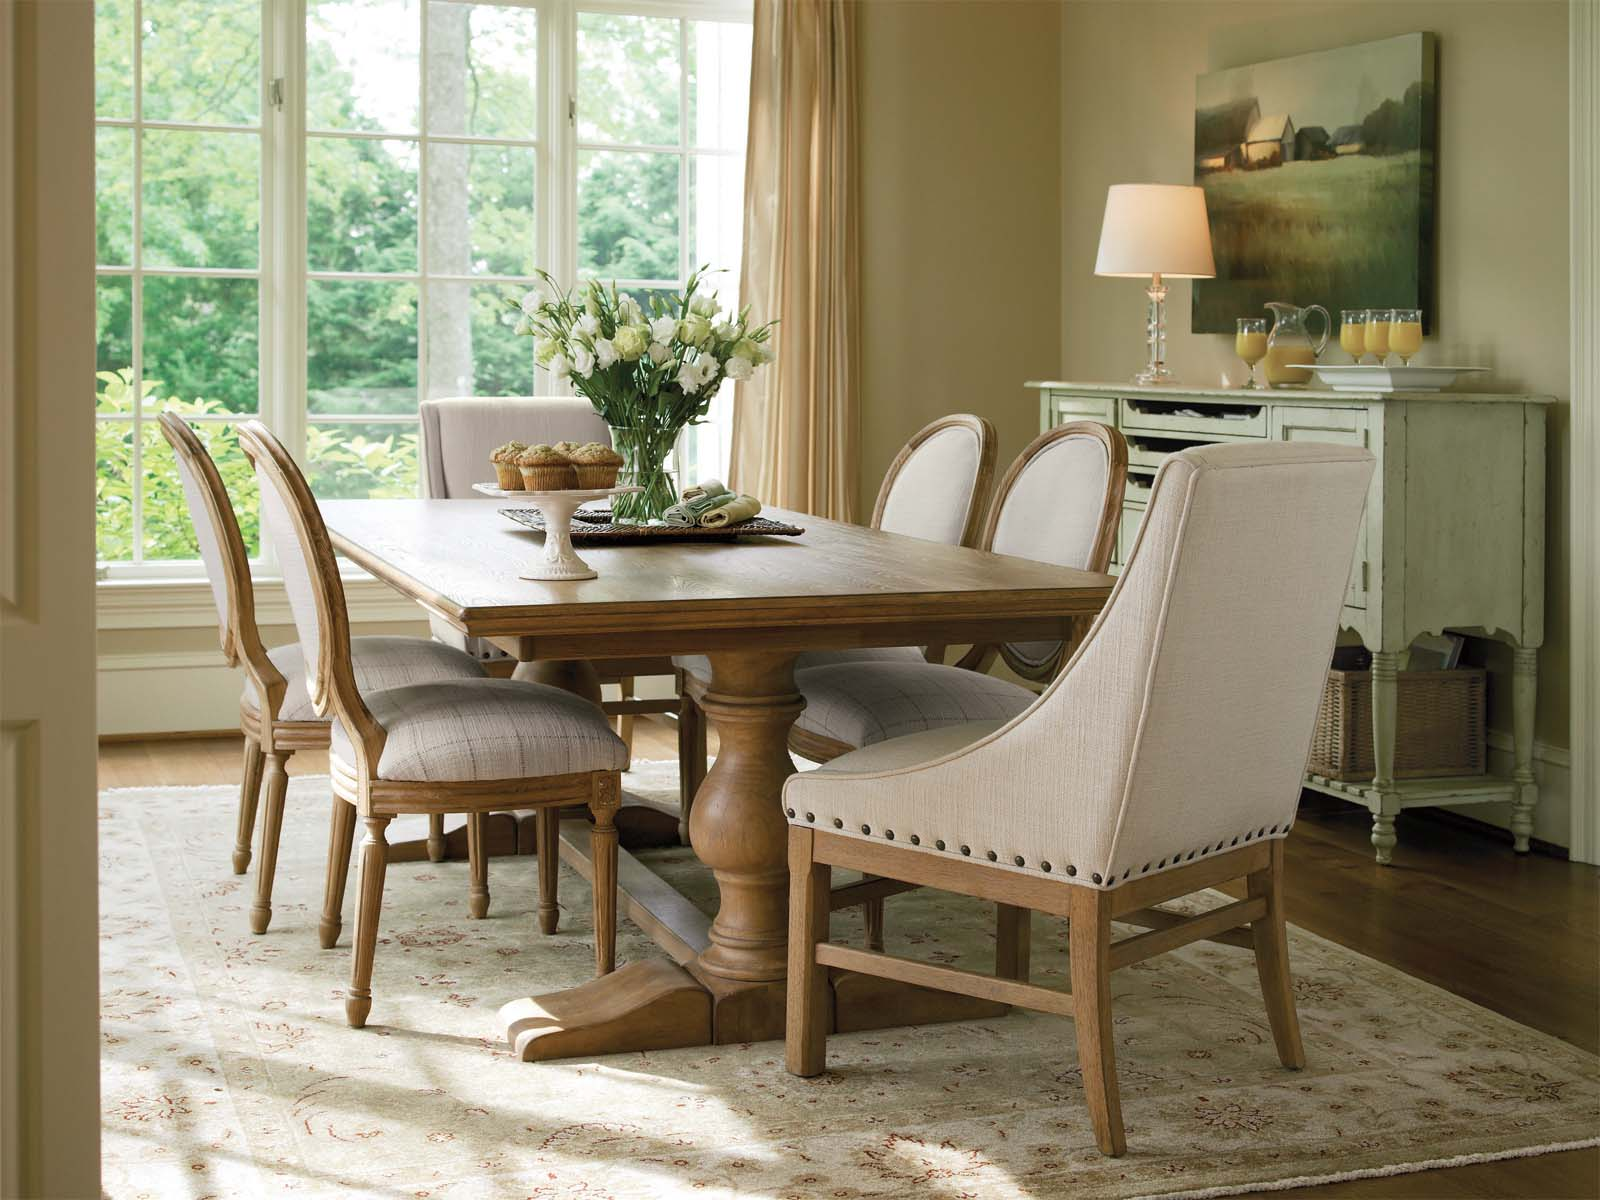 Impressive Farmhouse Dining Room Table Sets 1600 x 1200 · 185 kB · jpeg